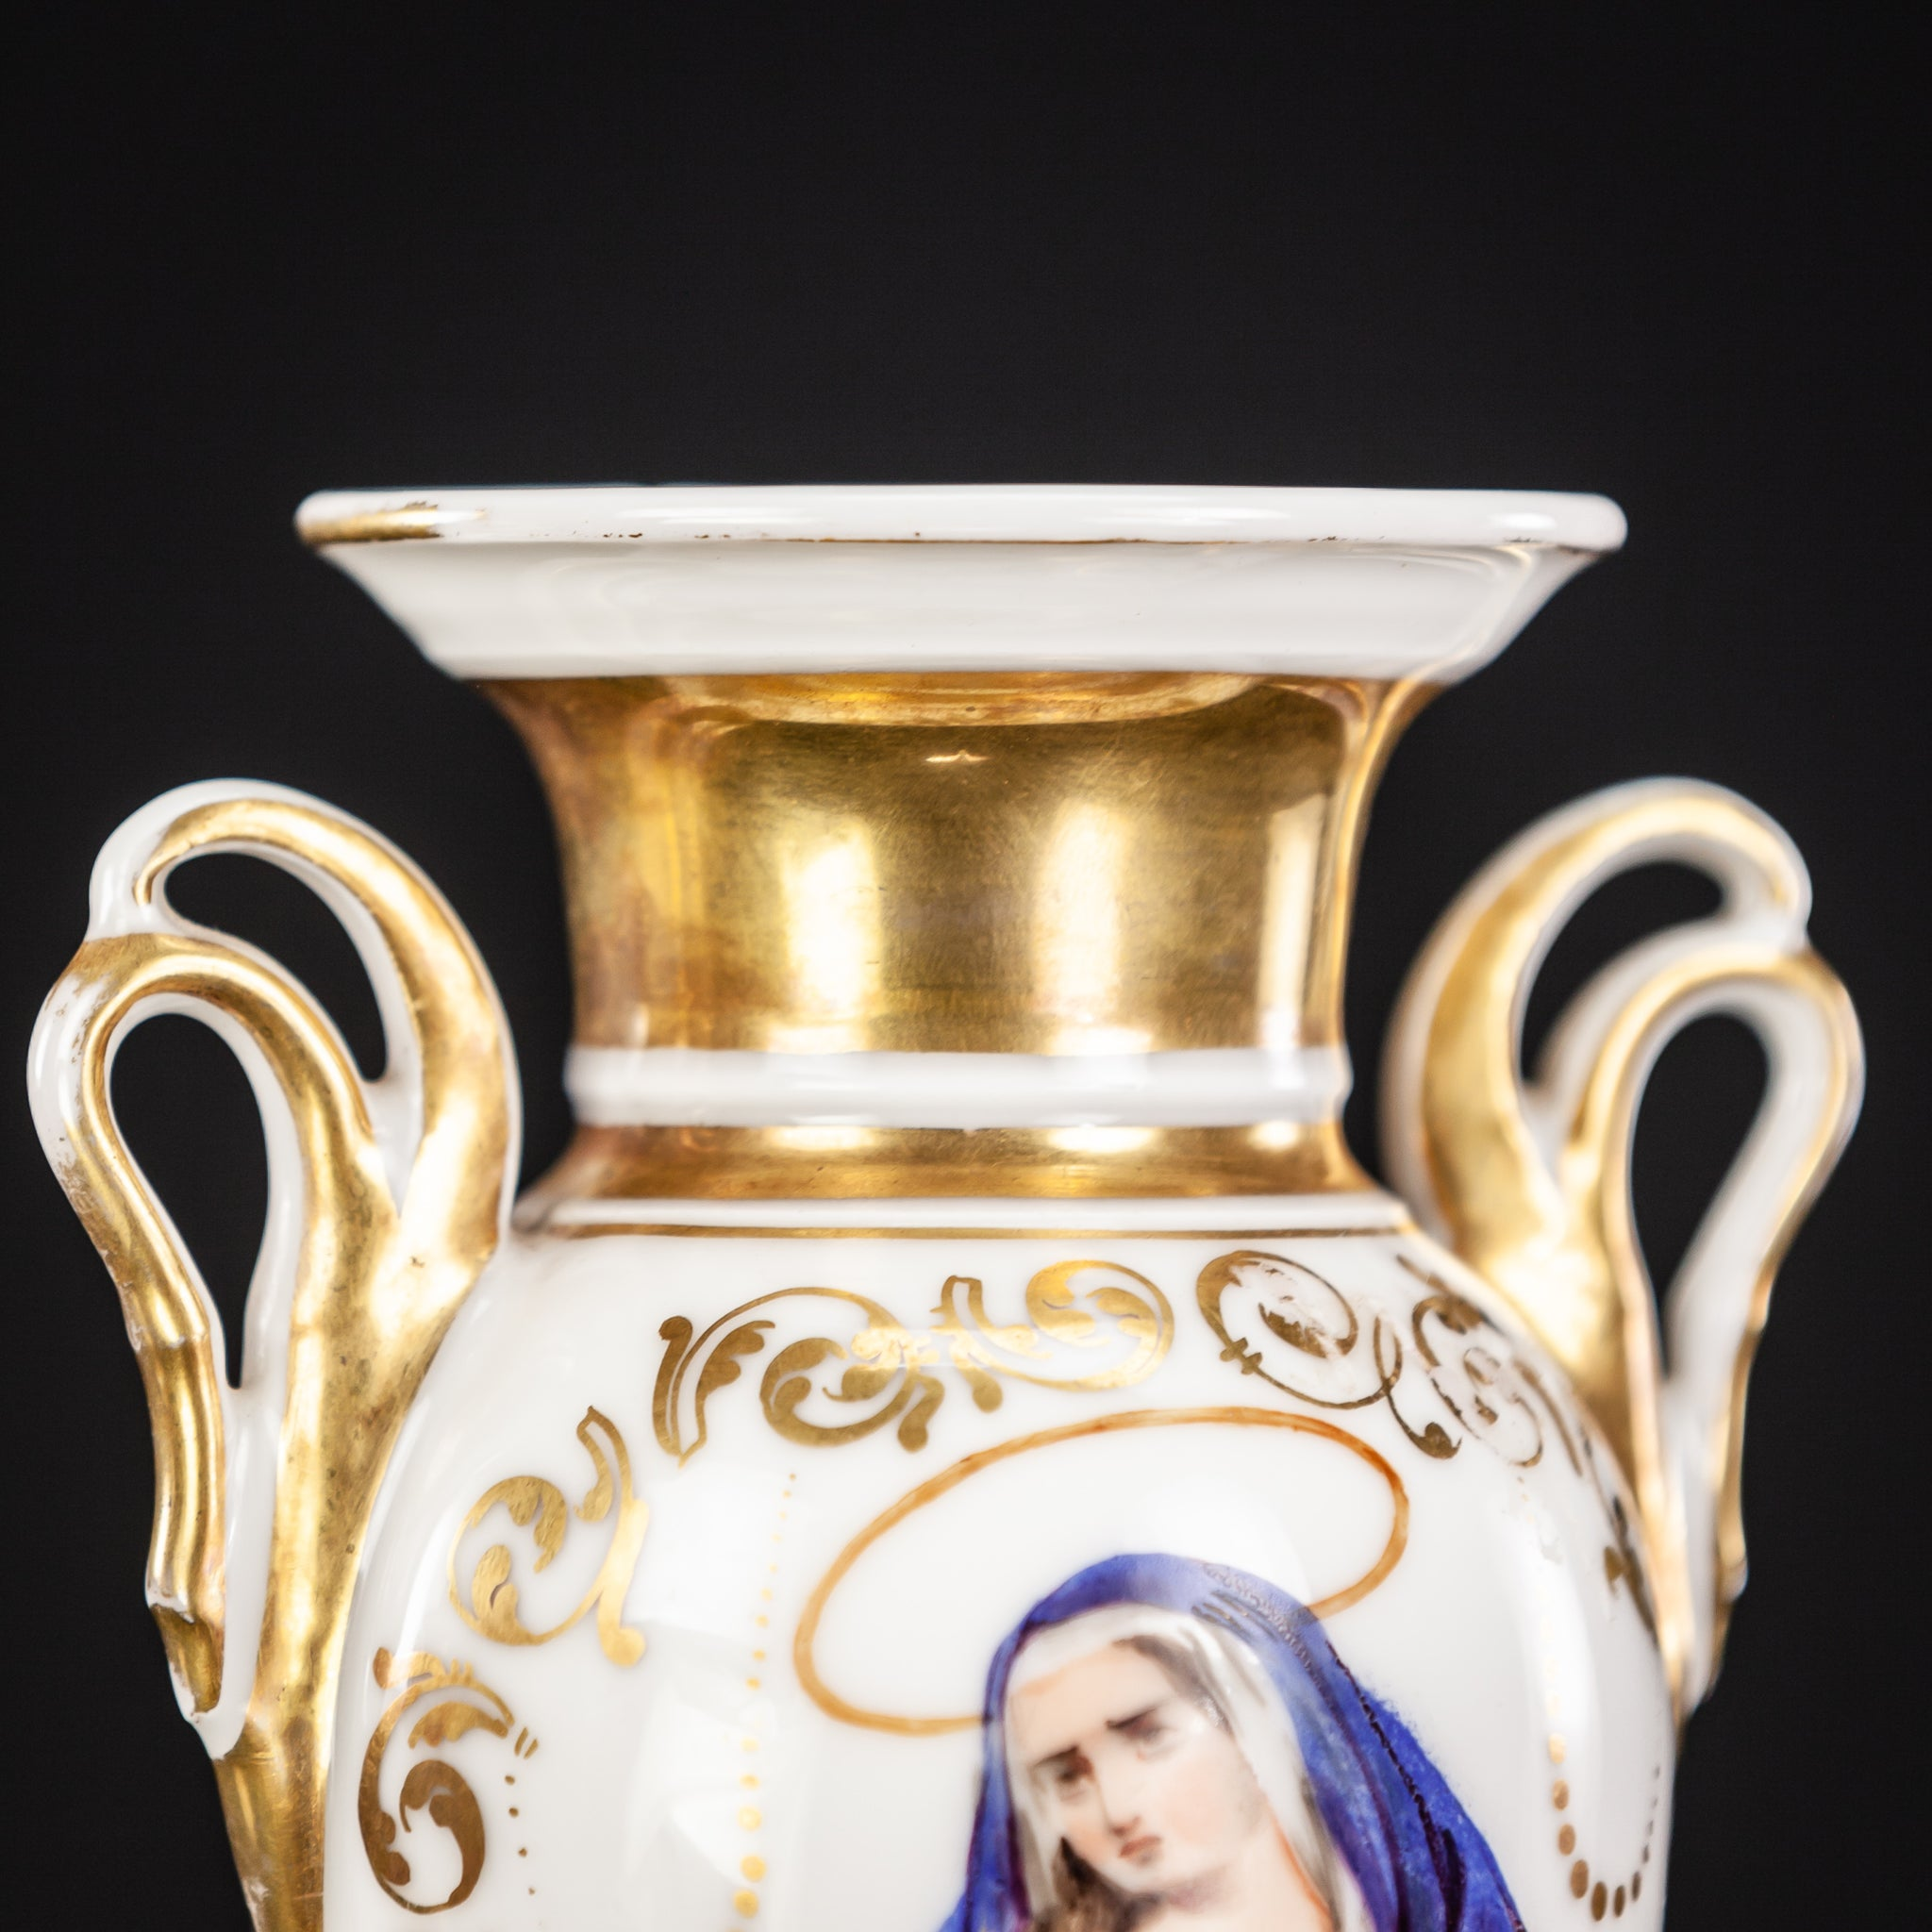 Porcelain Vase with Virgin Mary Painting